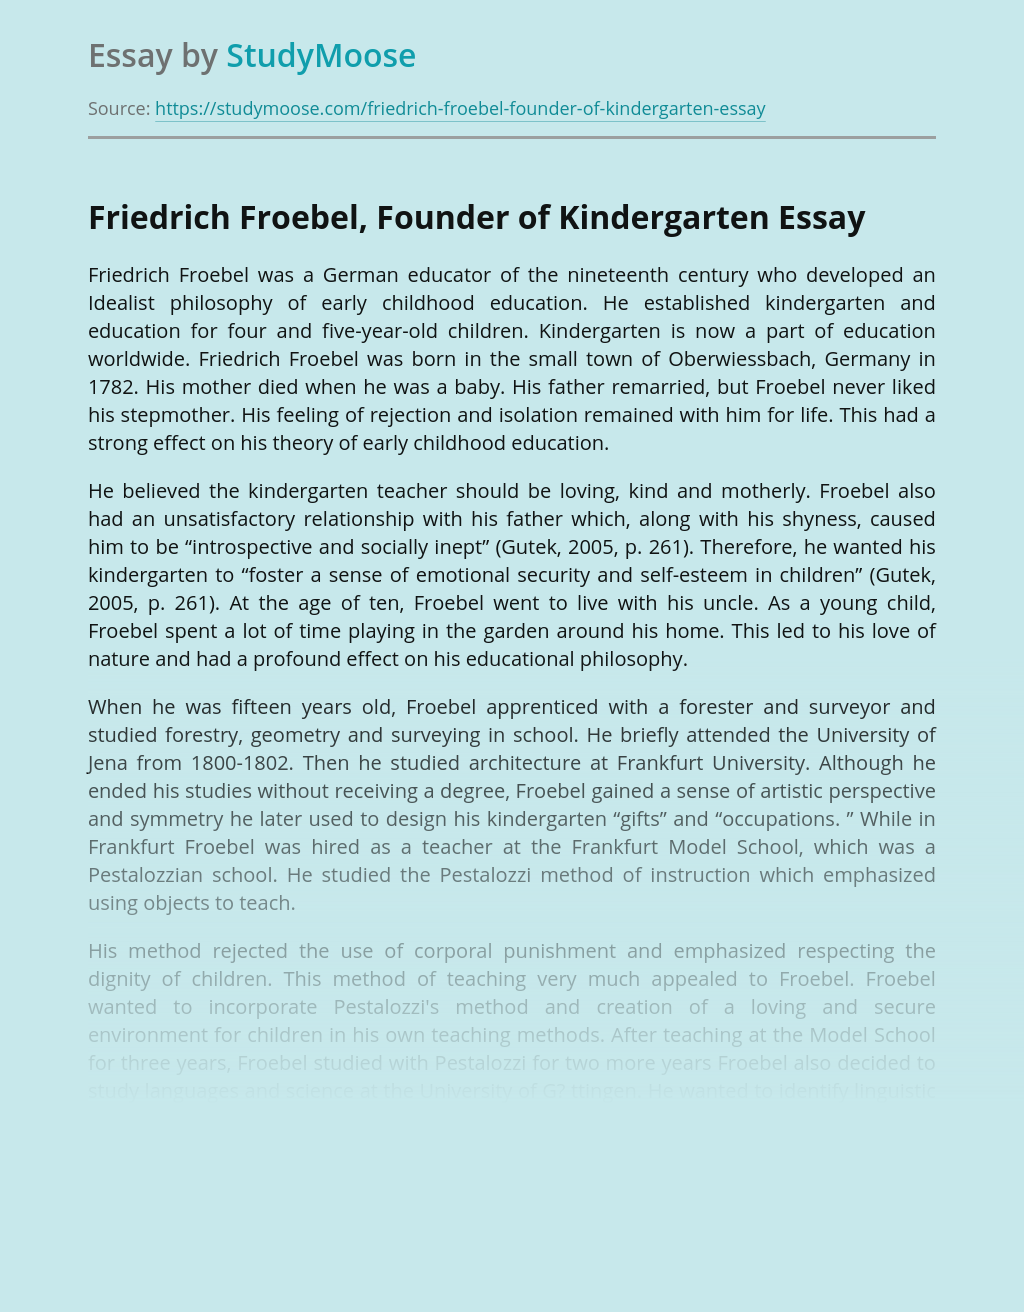 Friedrich Froebel's Contribution to Early Childhood Education